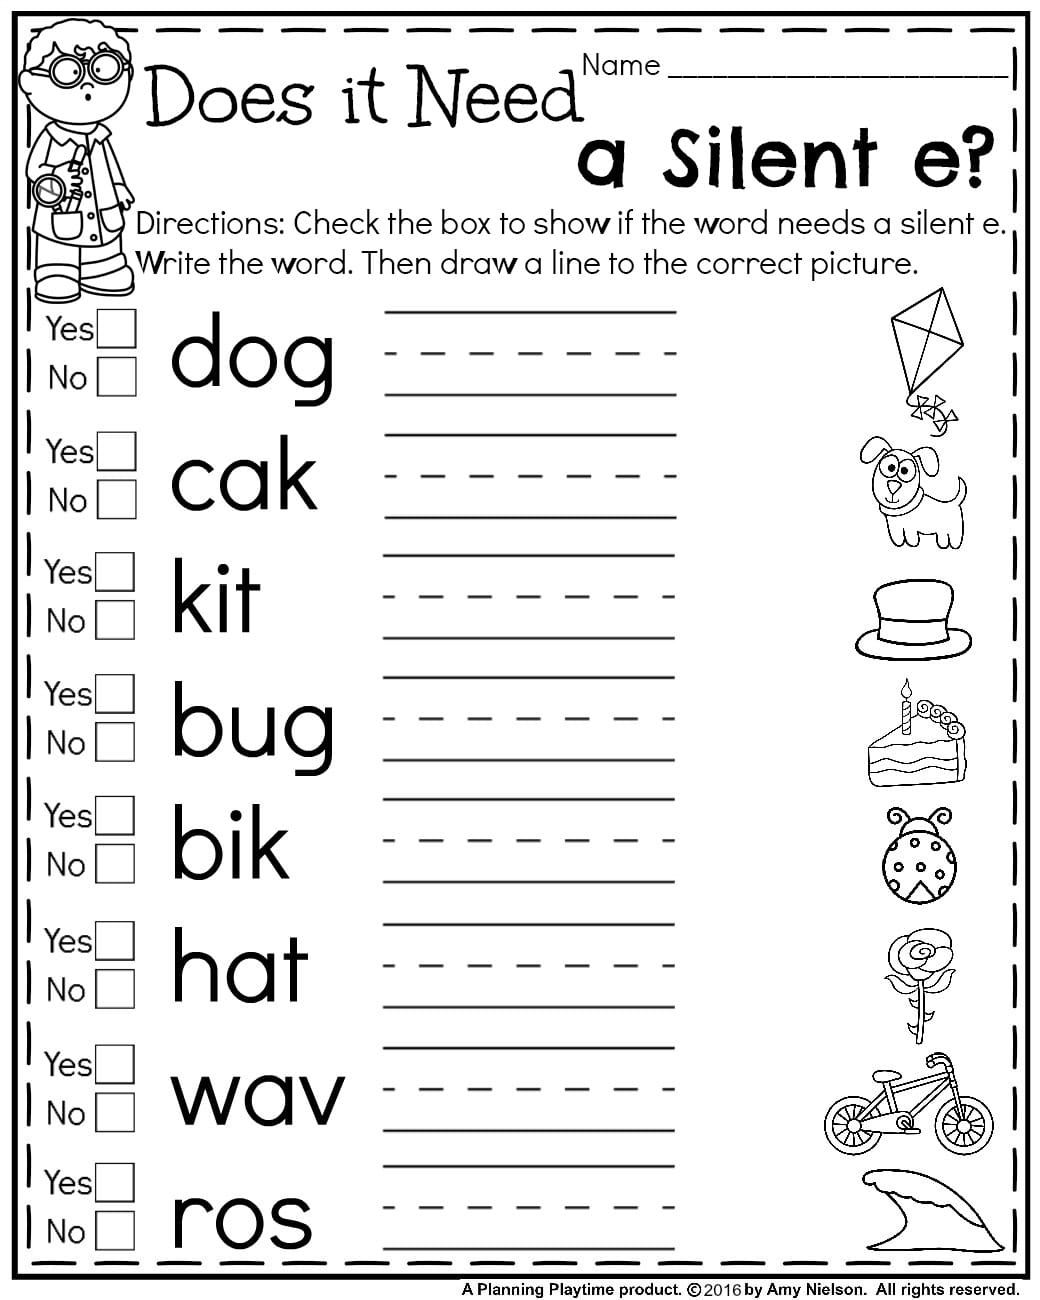 Workbooks inflectional endings first grade worksheets : First Grade Summer Worksheets | Worksheets, Summer worksheets and ...